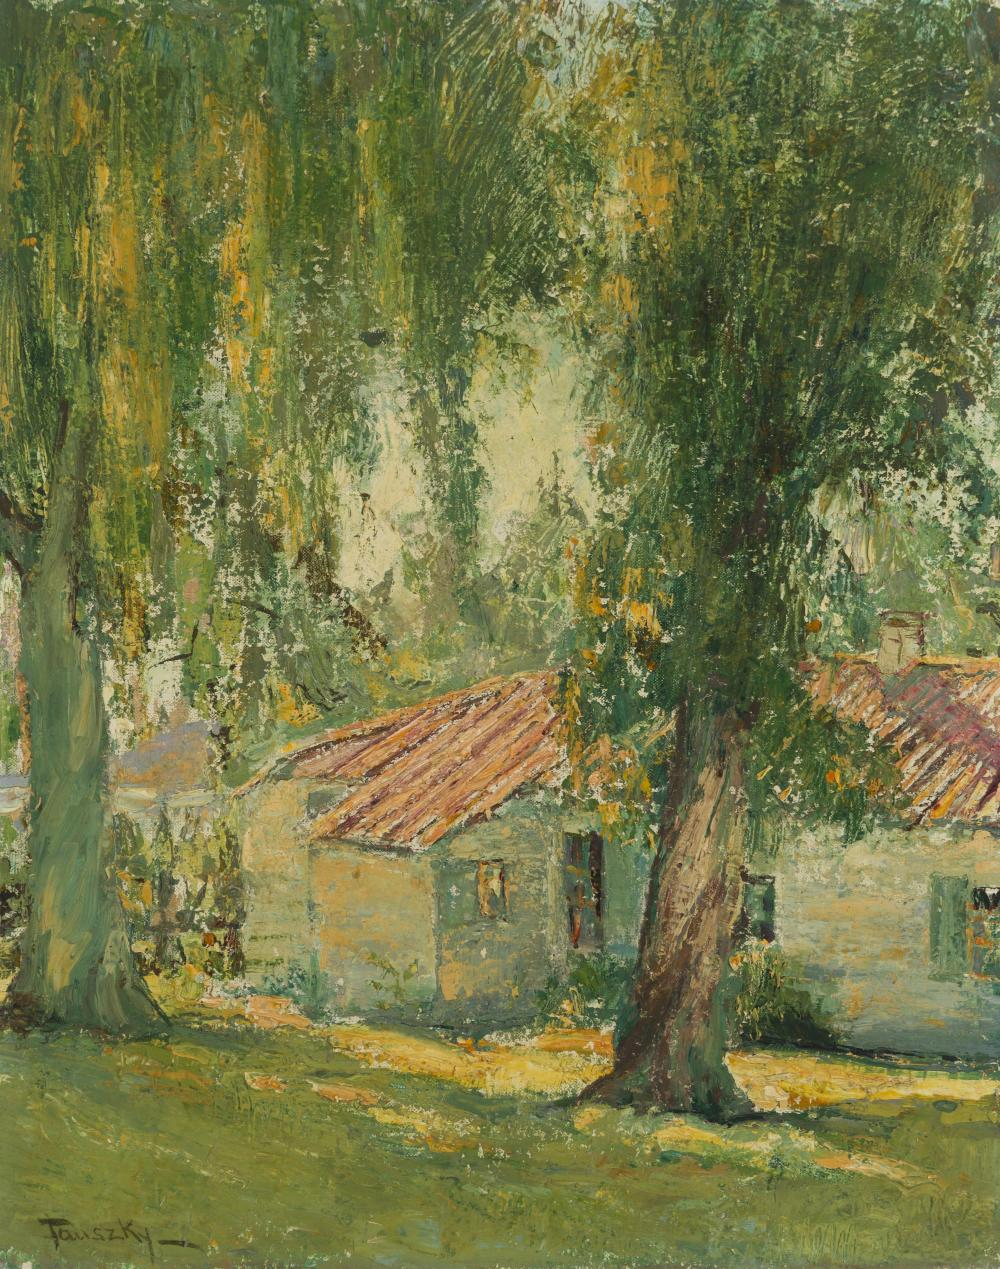 """David Anthony Tauszky, (1878-1972 Pasadena, CA), Cottage among trees, Oil on canvas, 20"""" H x 16"""" W"""